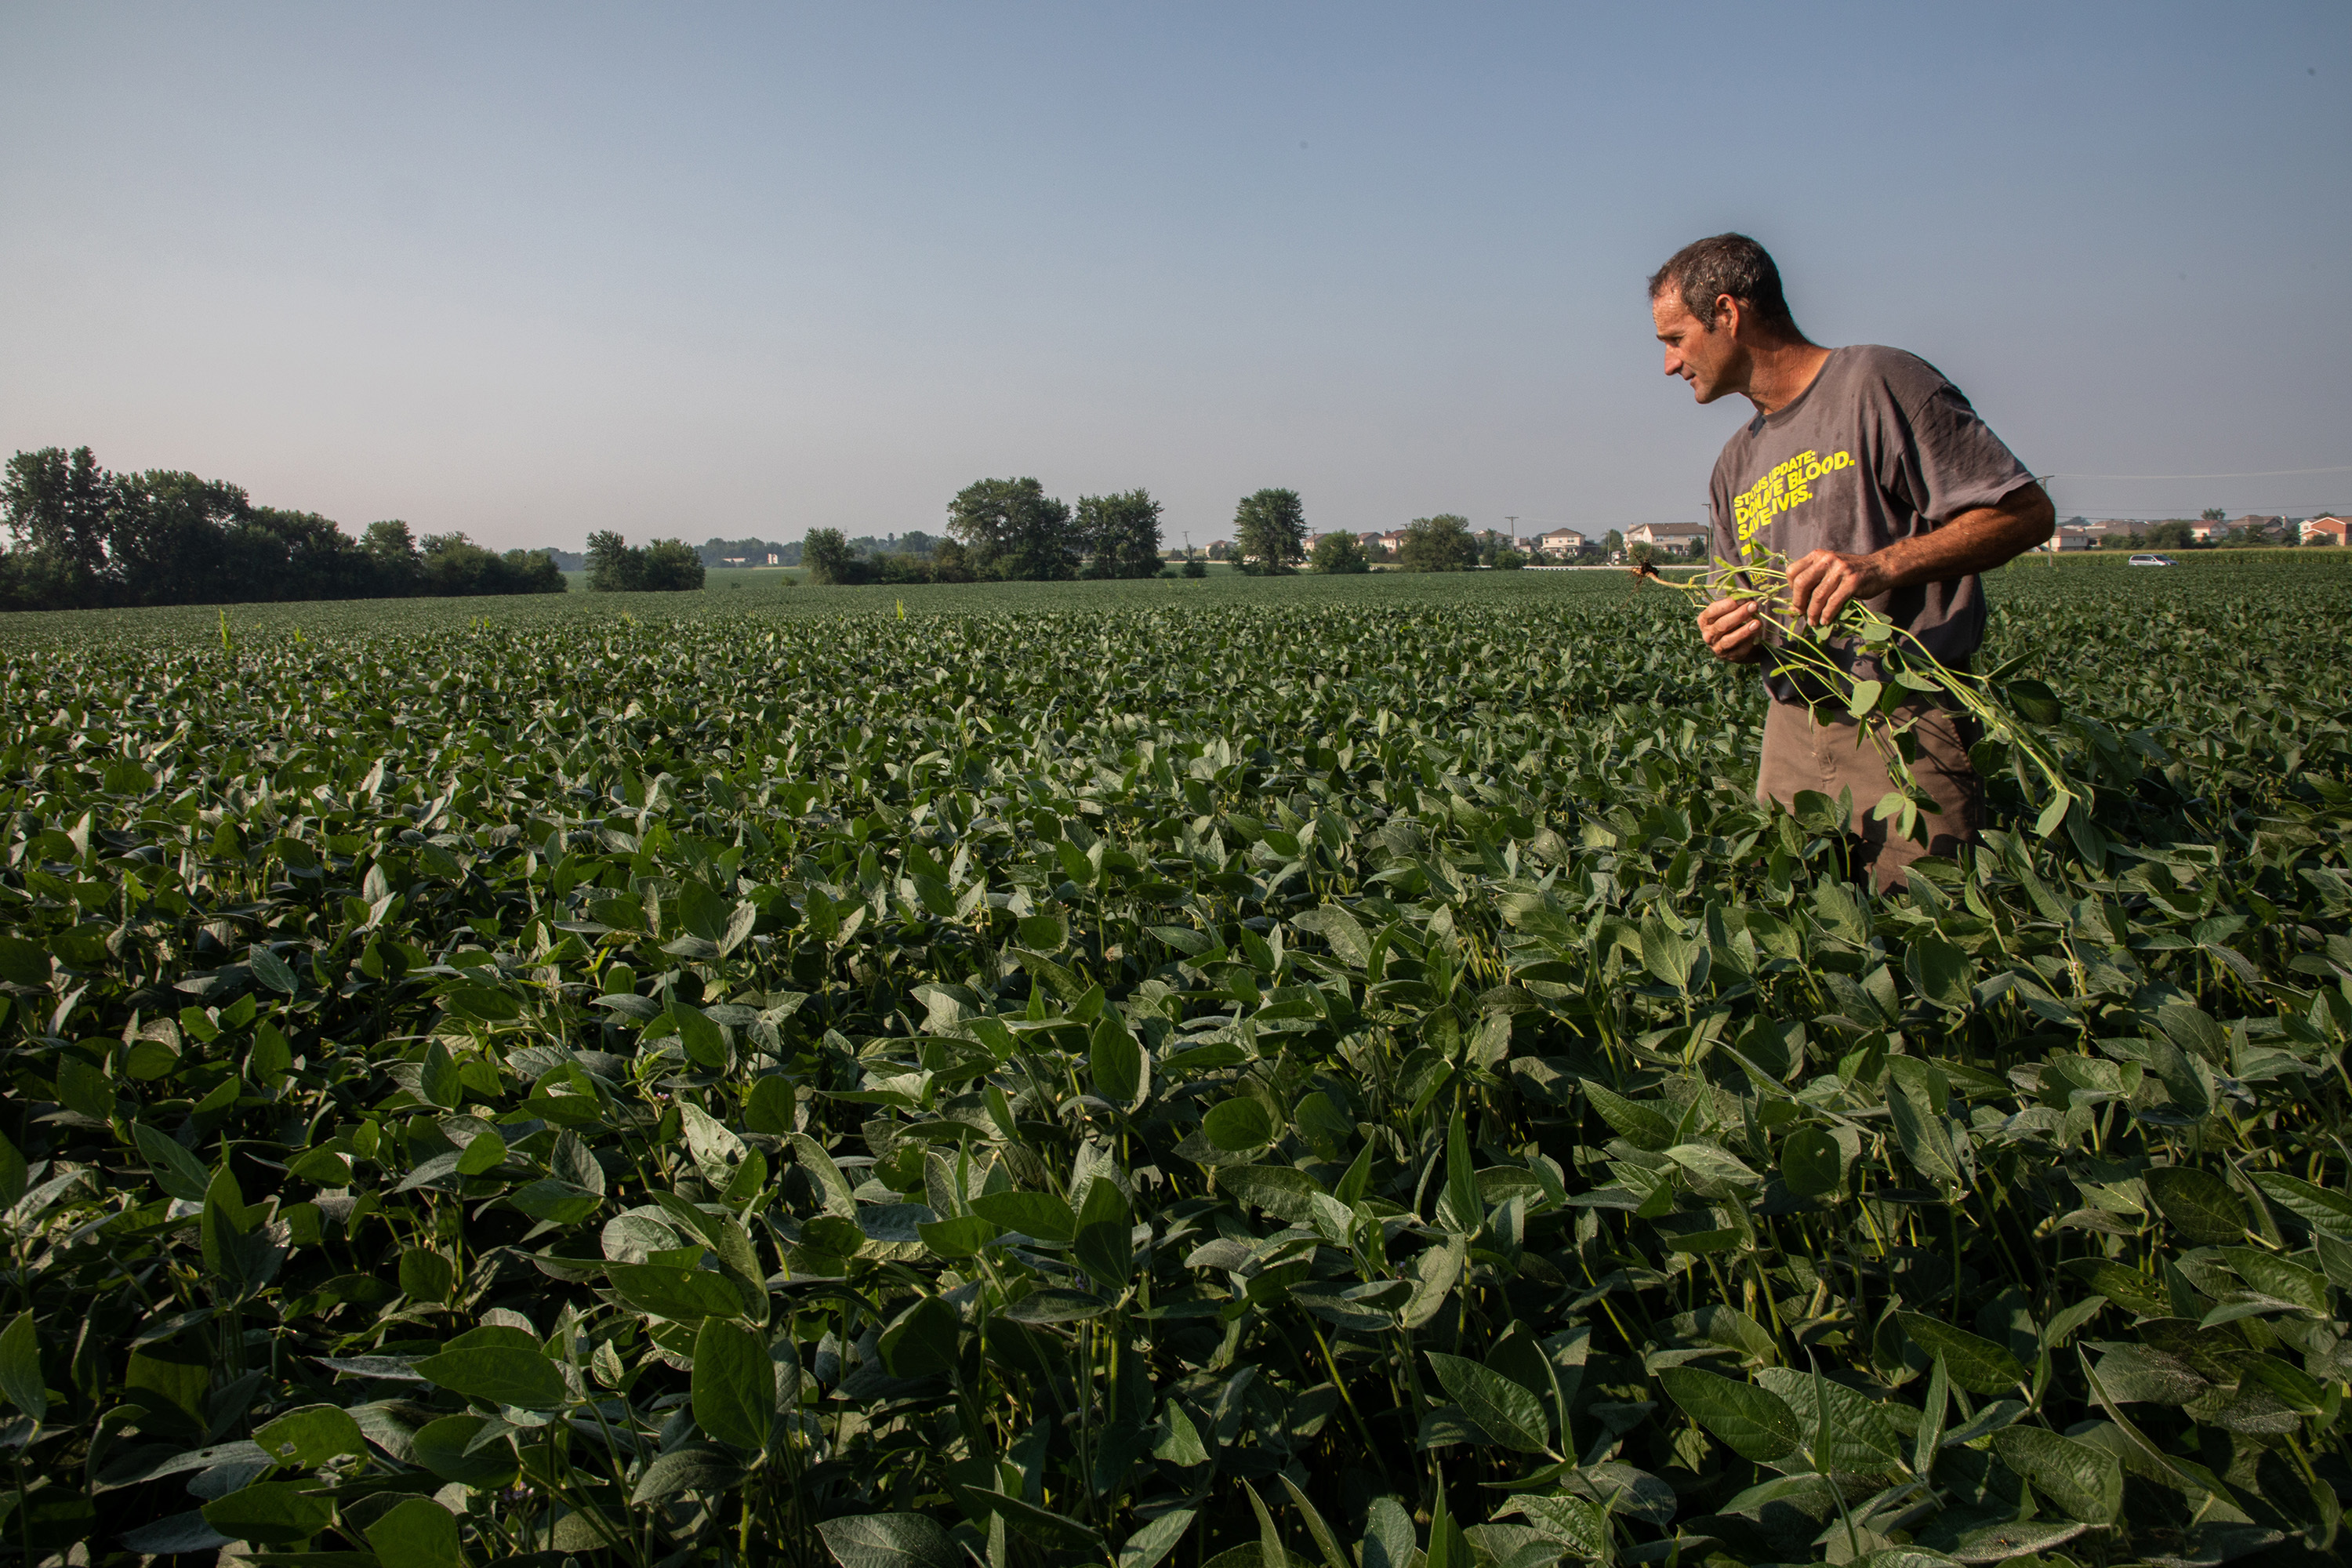 John Kiefner, 54, checks soybean plants on his farm in Will County, IL. The corn and soybean farmer and expects farmers will try to cut back on expenses with soybean prices down. He projects to make a profit only from production of straw and hay this year due to the trade war with China. (Zbigniew Bzdak/Chicago Tribune/TNS)